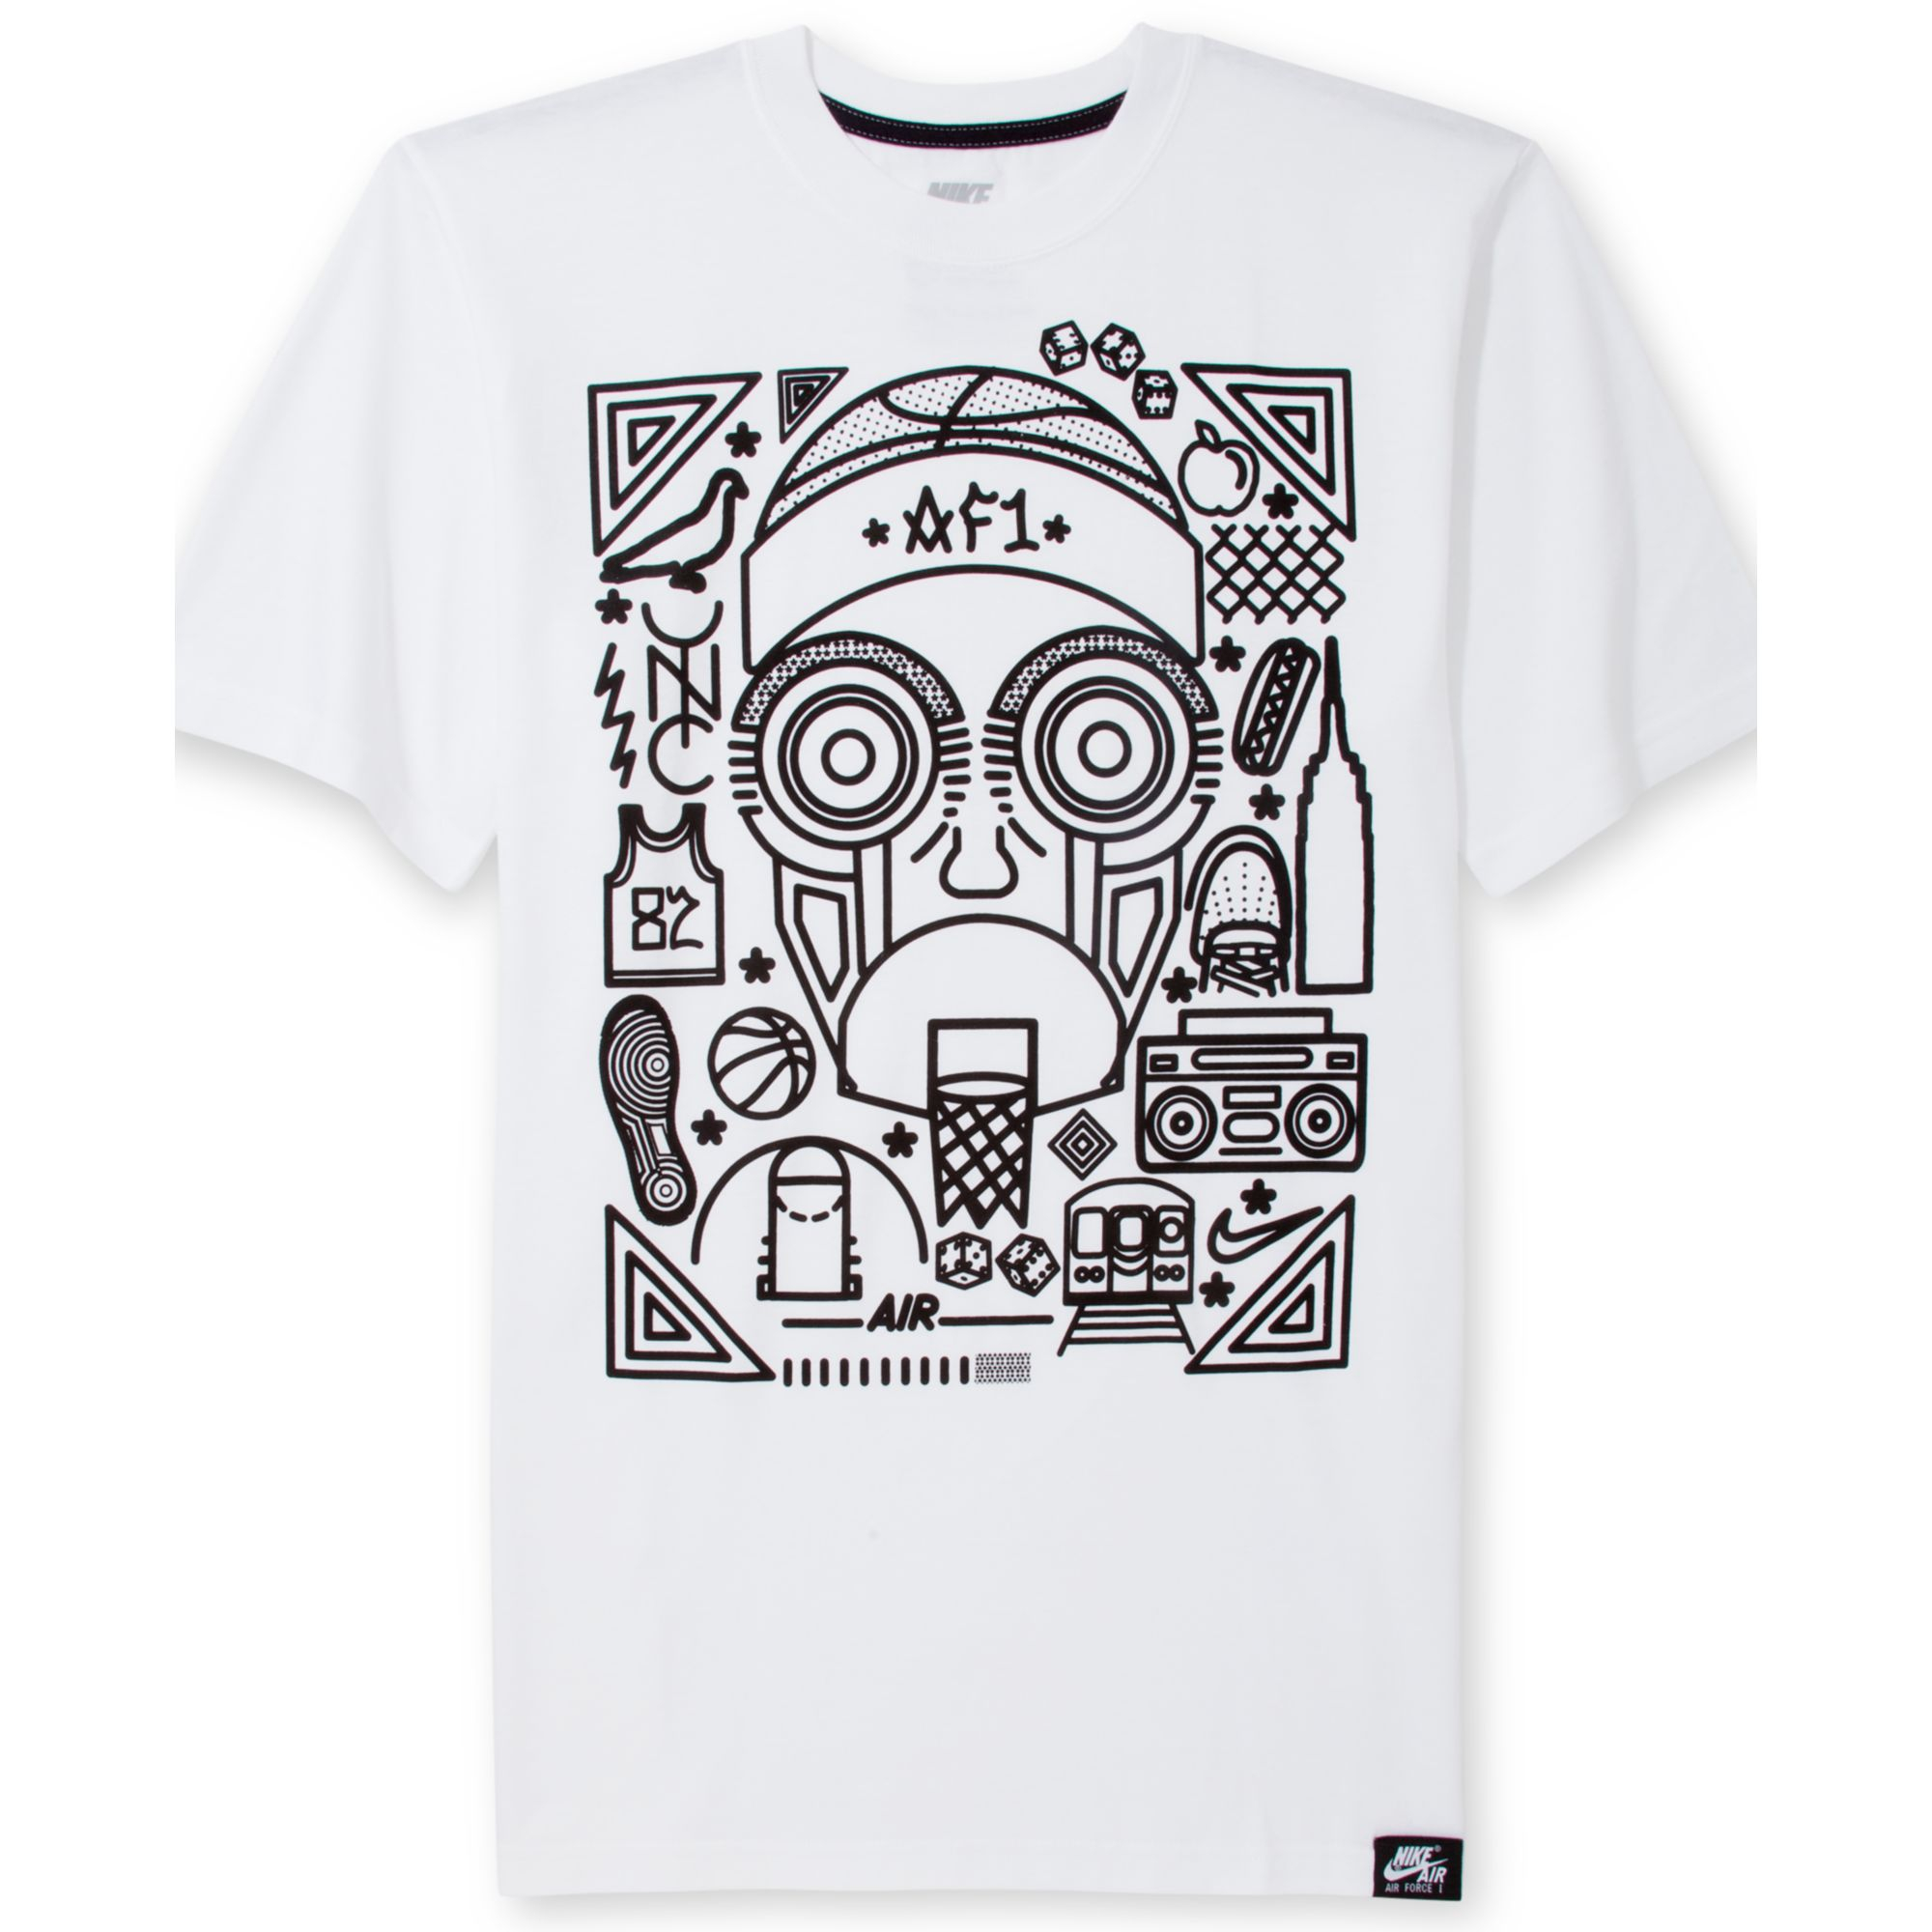 5247e2508e748c Lyst - Nike Air Force 1 Graphic Tshirt in White for Men